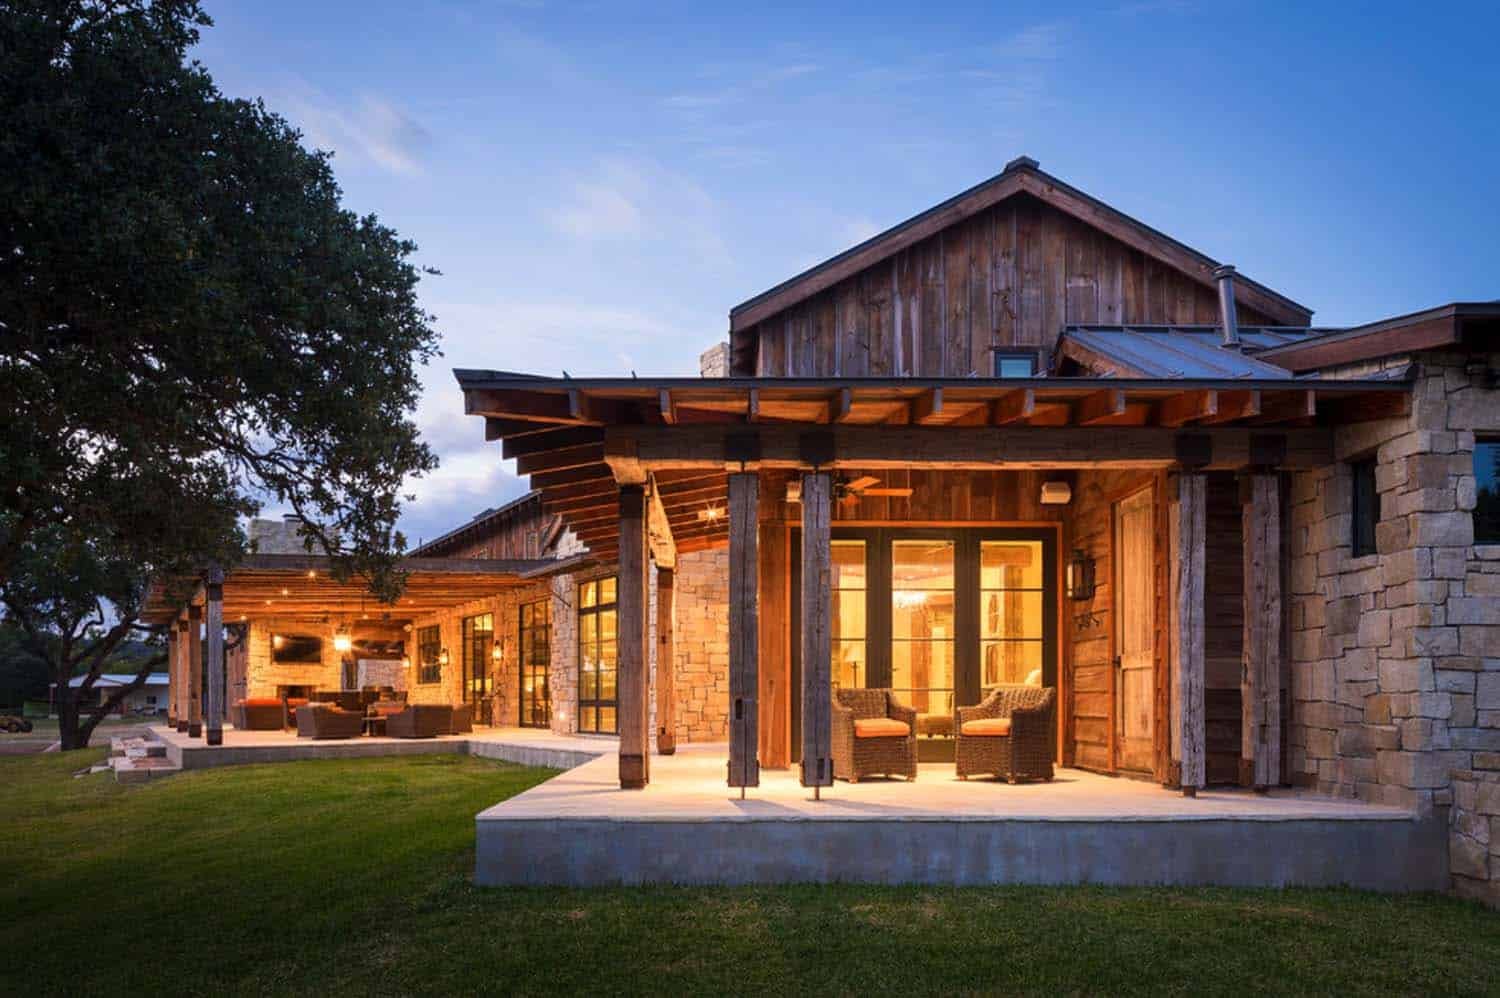 Modern rustic barn style retreat in texas hill country for Texas hill country house plans